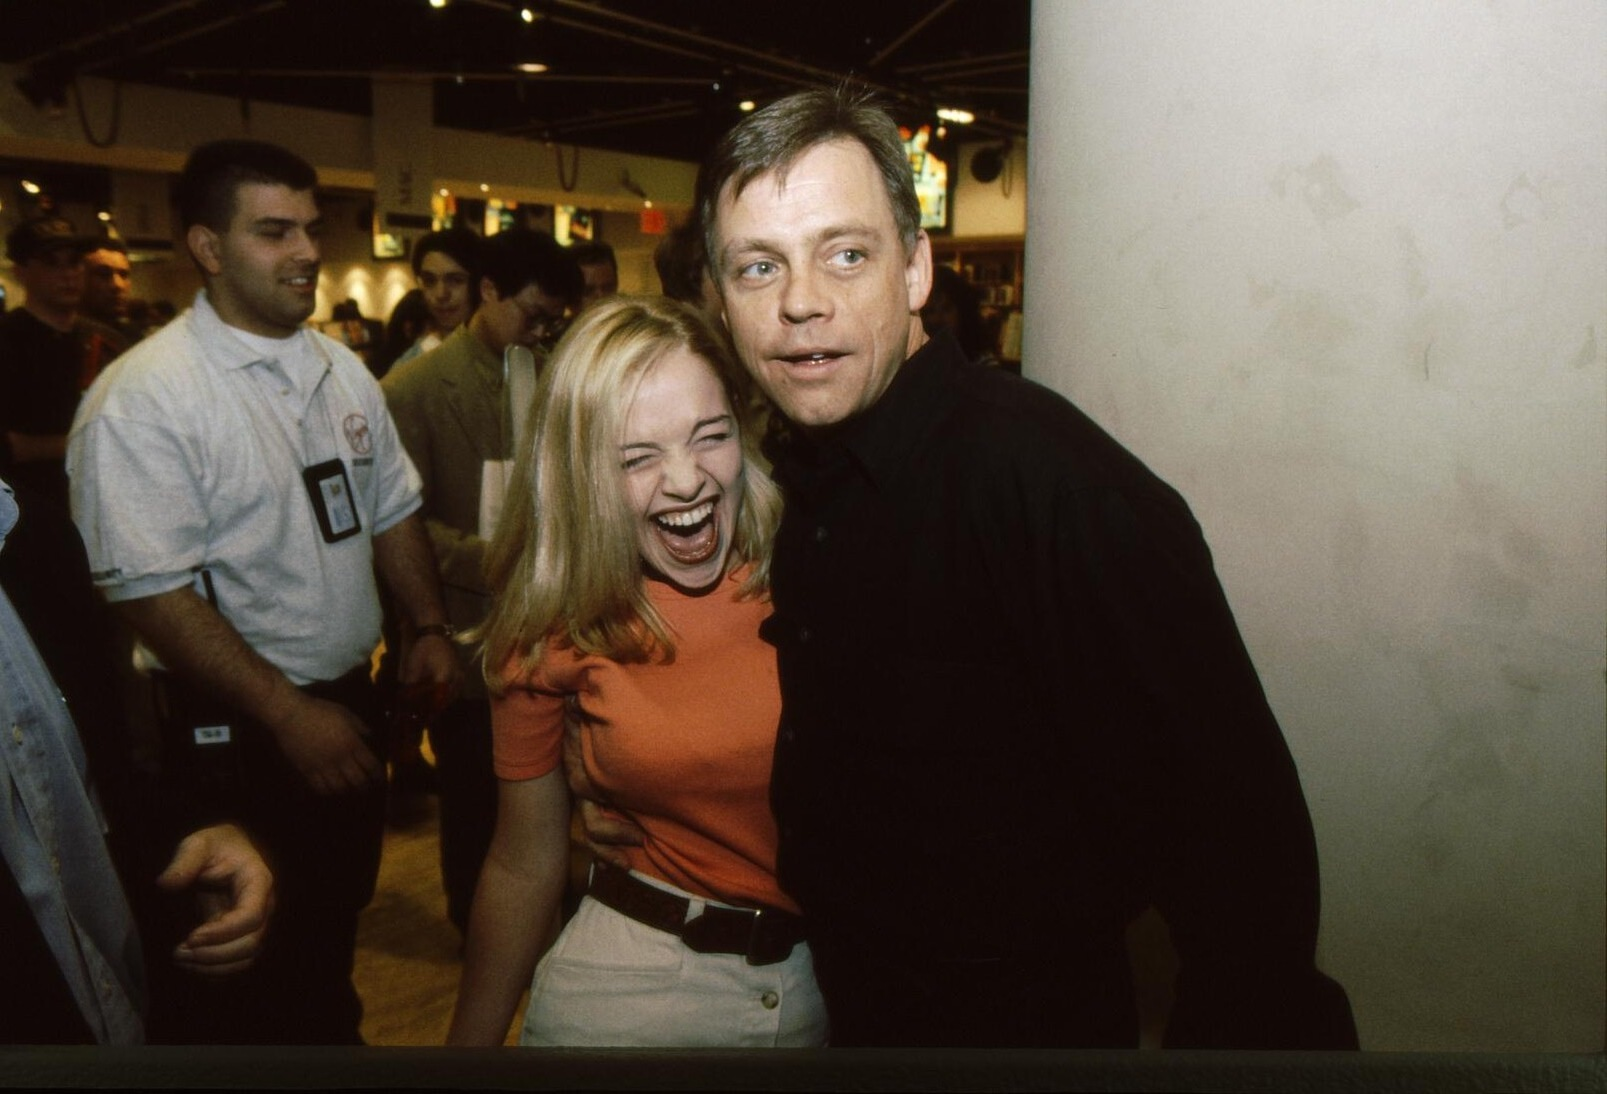 Gallery Mark Hamill On Tour August 11 2010 Wing Commander Cic